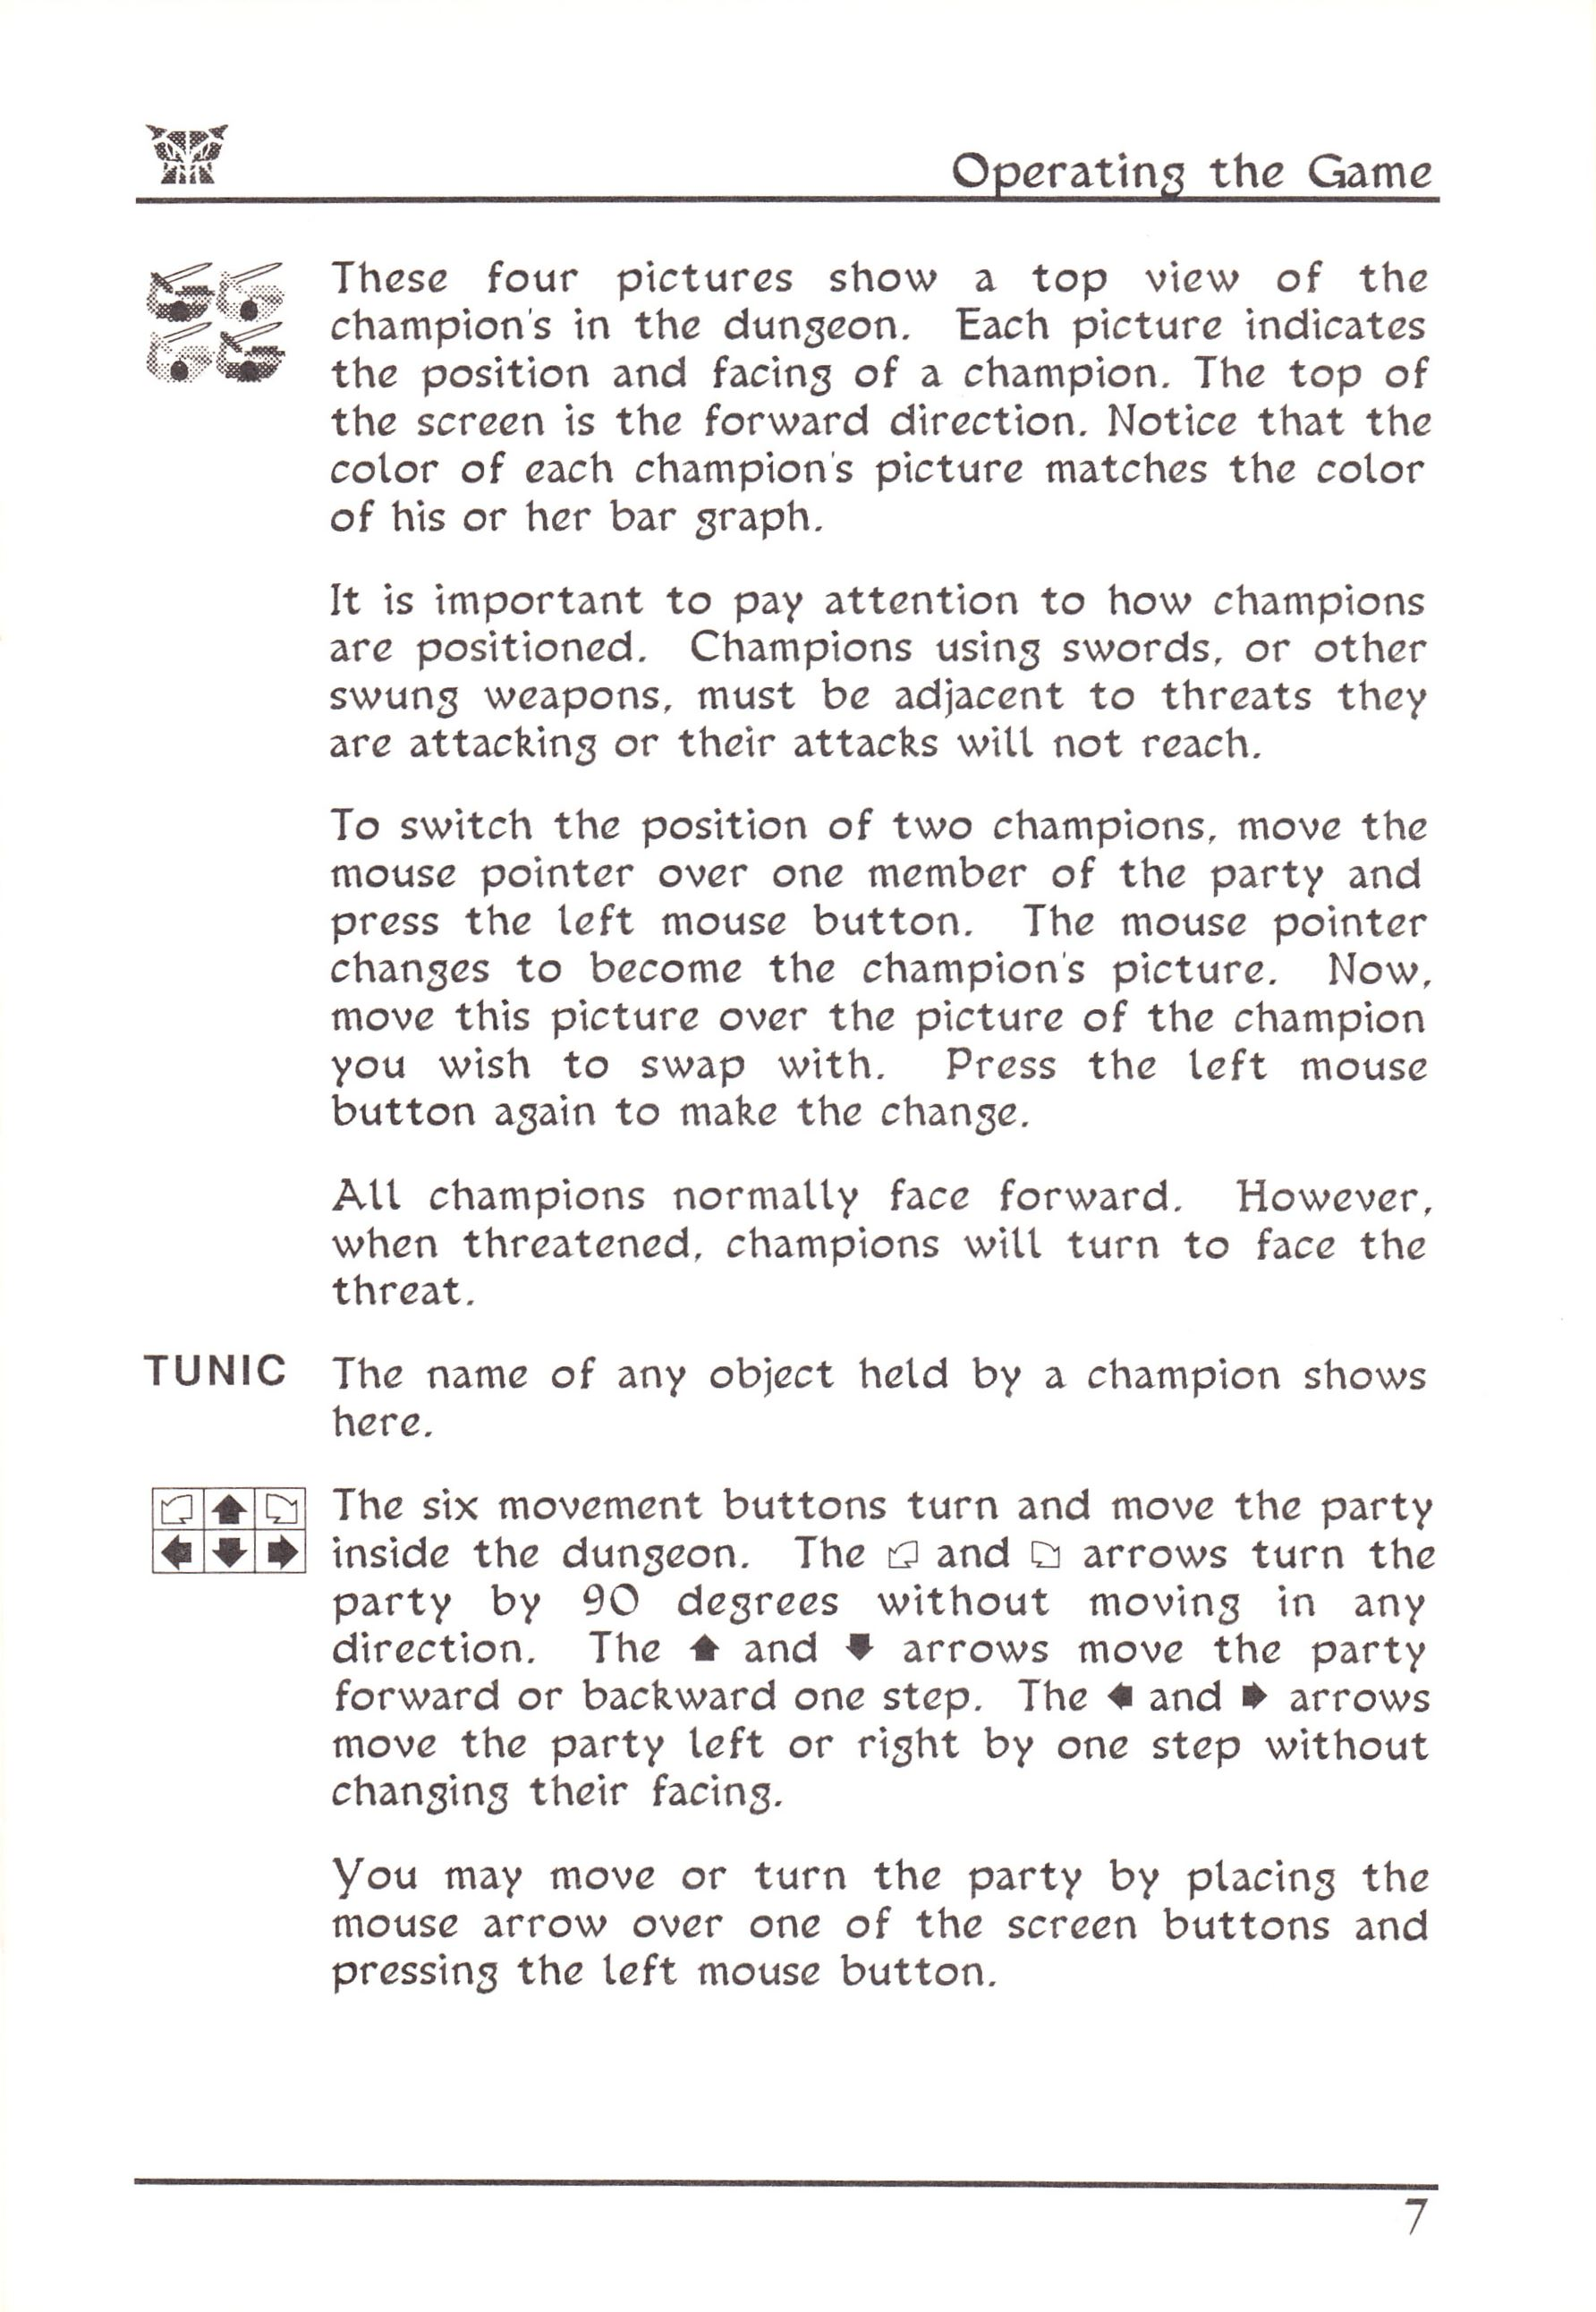 Game - Dungeon Master - US - Atari ST - Early Box - Manual - Page 031 - Scan